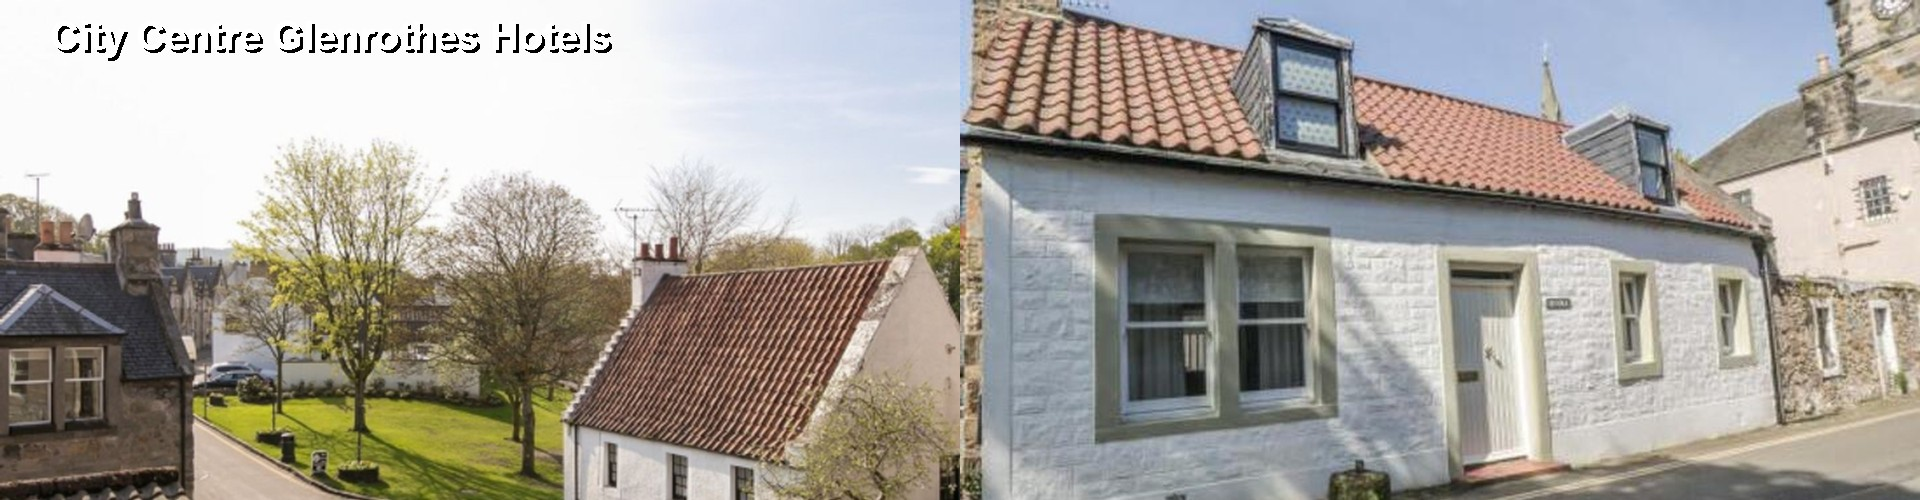 5 Best Hotels near City Centre Glenrothes